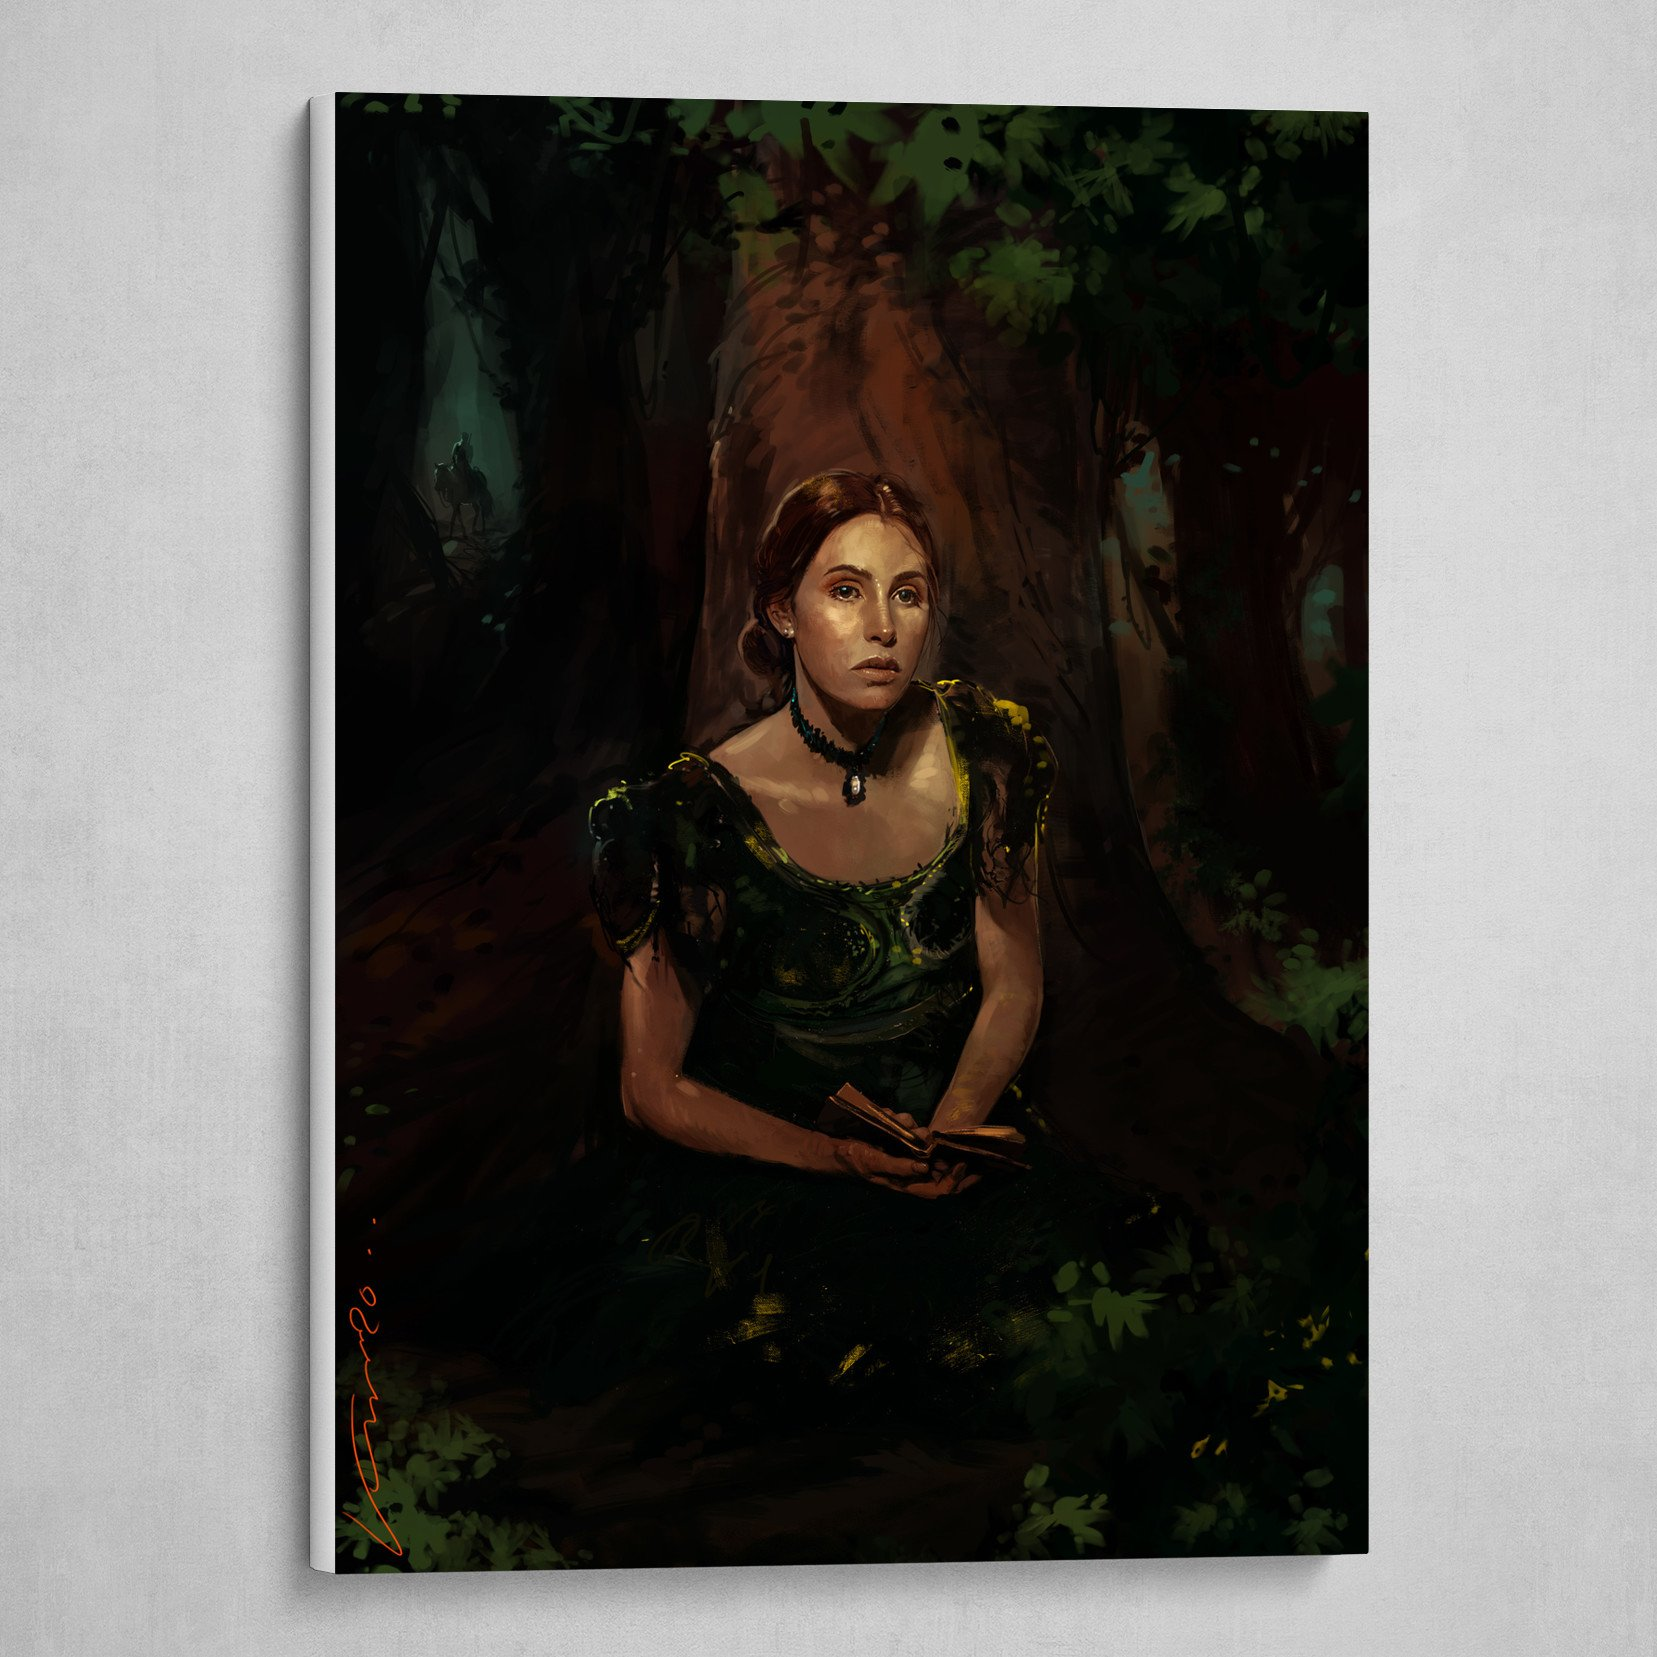 lady into the forest